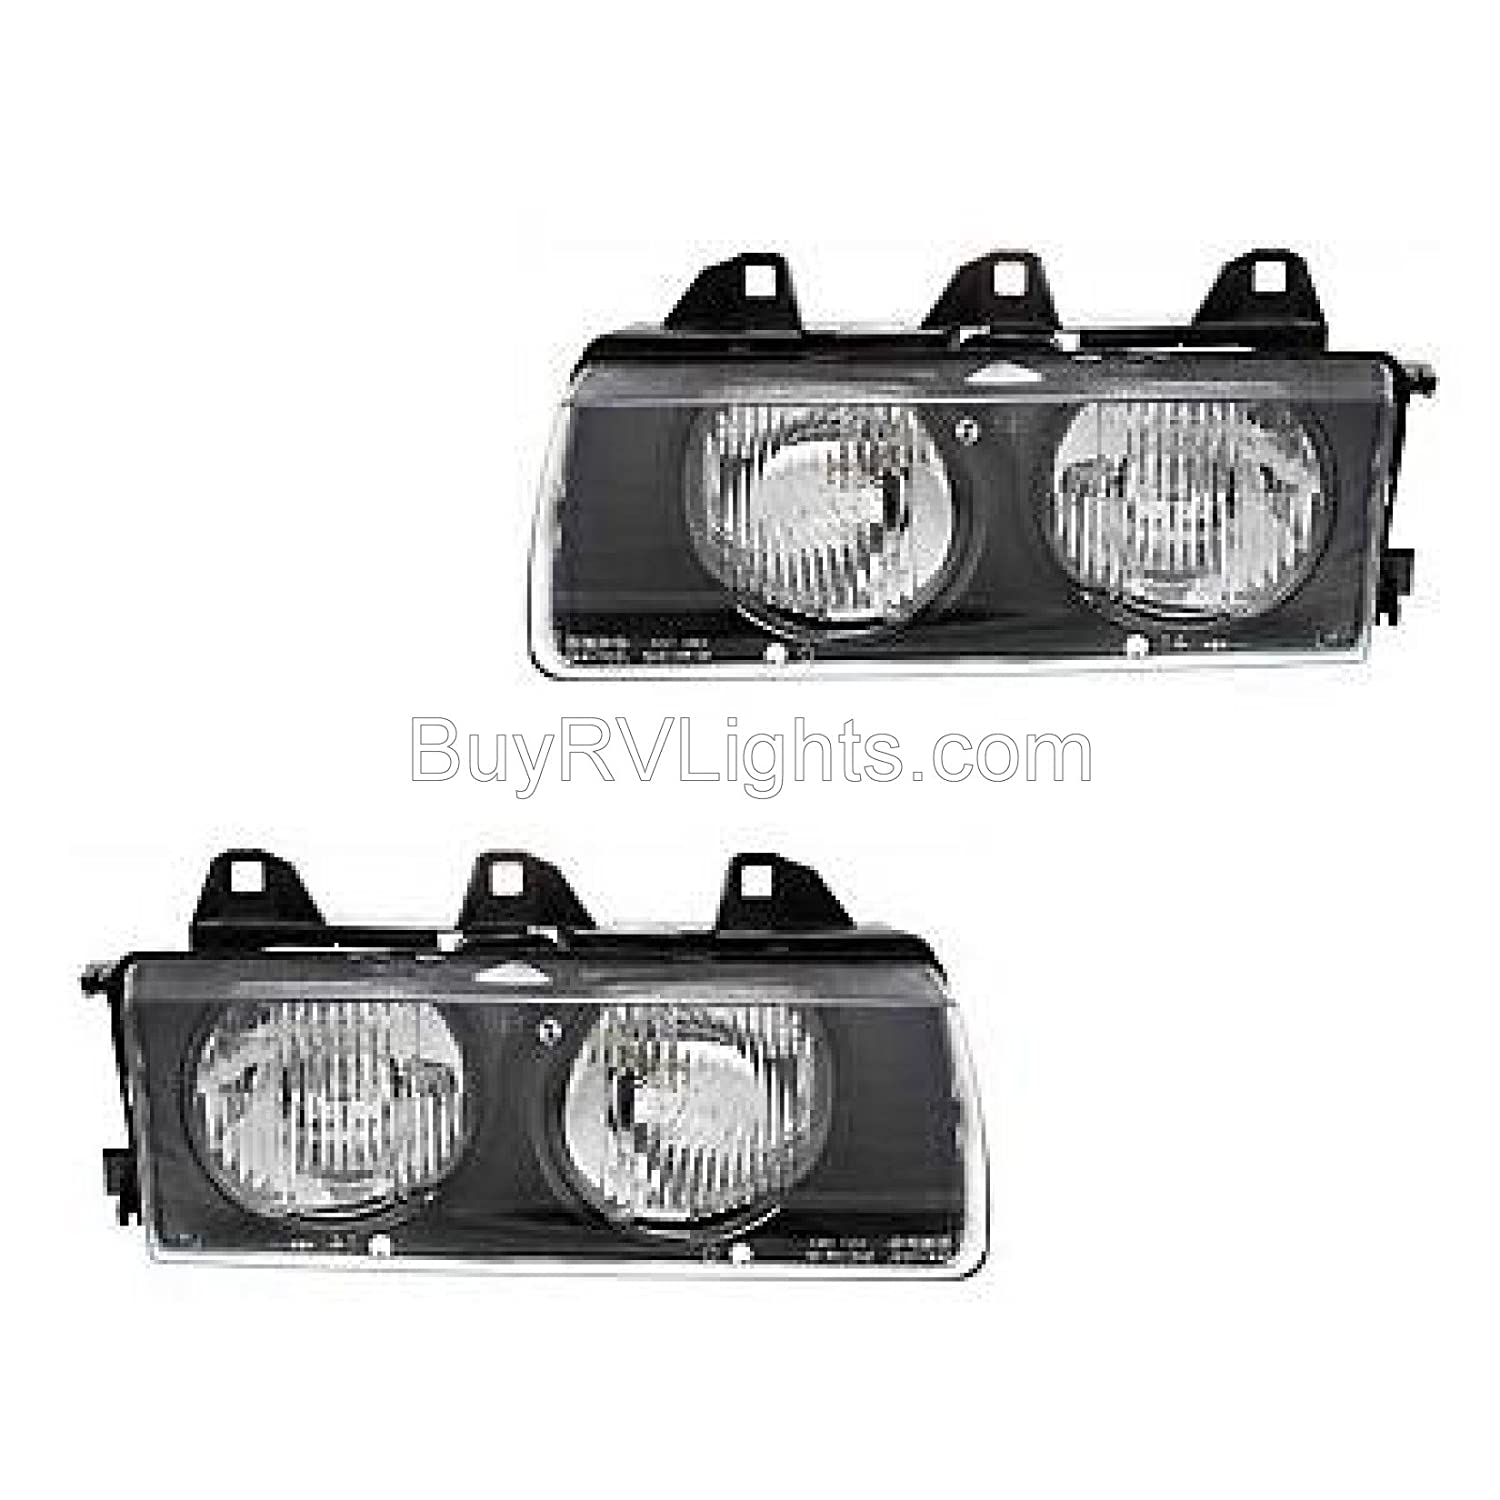 Fleetwood Expedition 2000-2005 RV Motorhome Pair Left /& Right Replacement Headlights Head Lights Front Lamps with Bulb